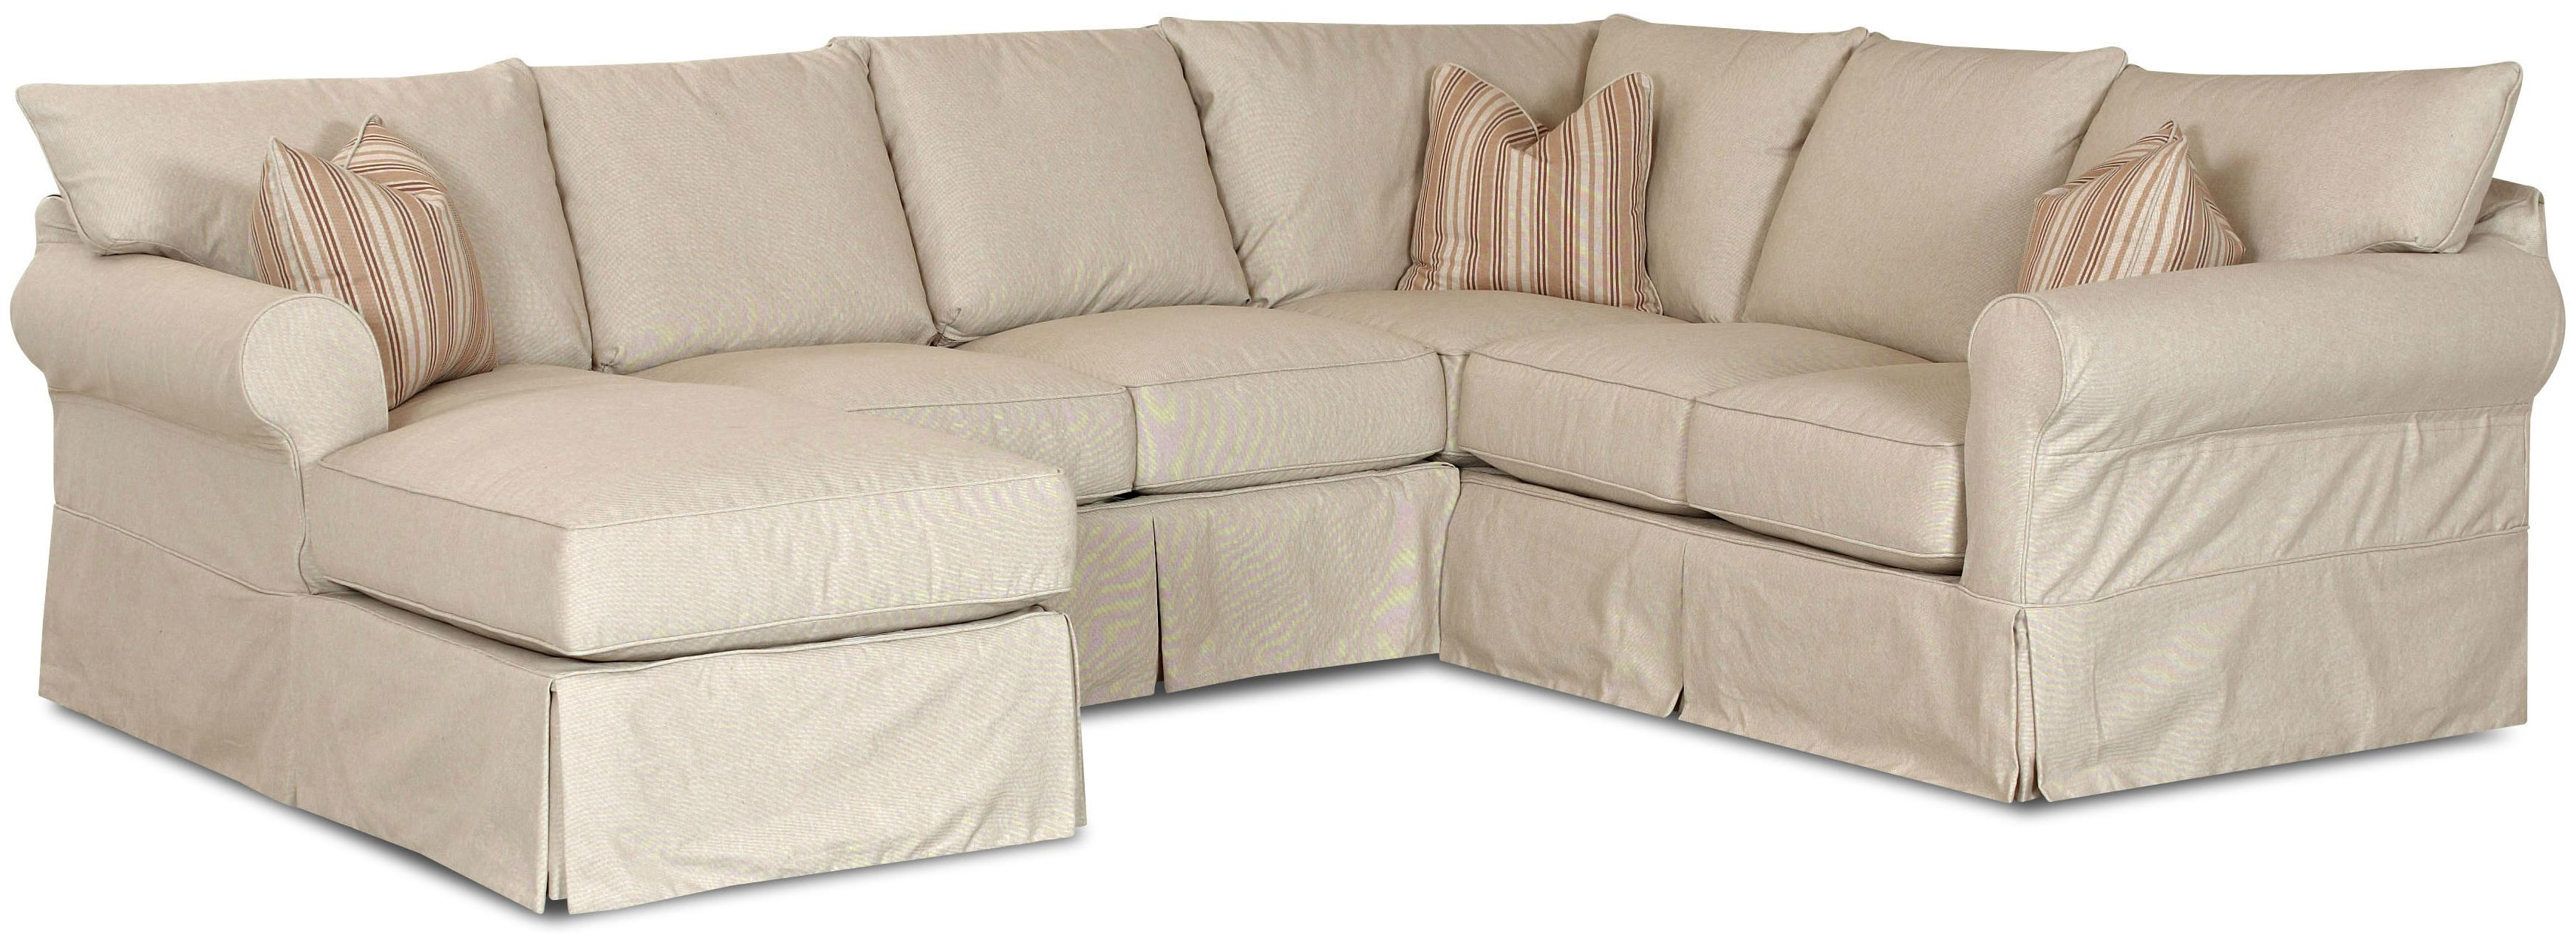 Klaussner Jenny Slip Cover Sectional Sofa with Left Chaise - AHFA - Sofa Sectional Dealer Locator  sc 1 st  Furniture Dealer Locator - Find your furniture : slipcover for chaise sofa - Sectionals, Sofas & Couches